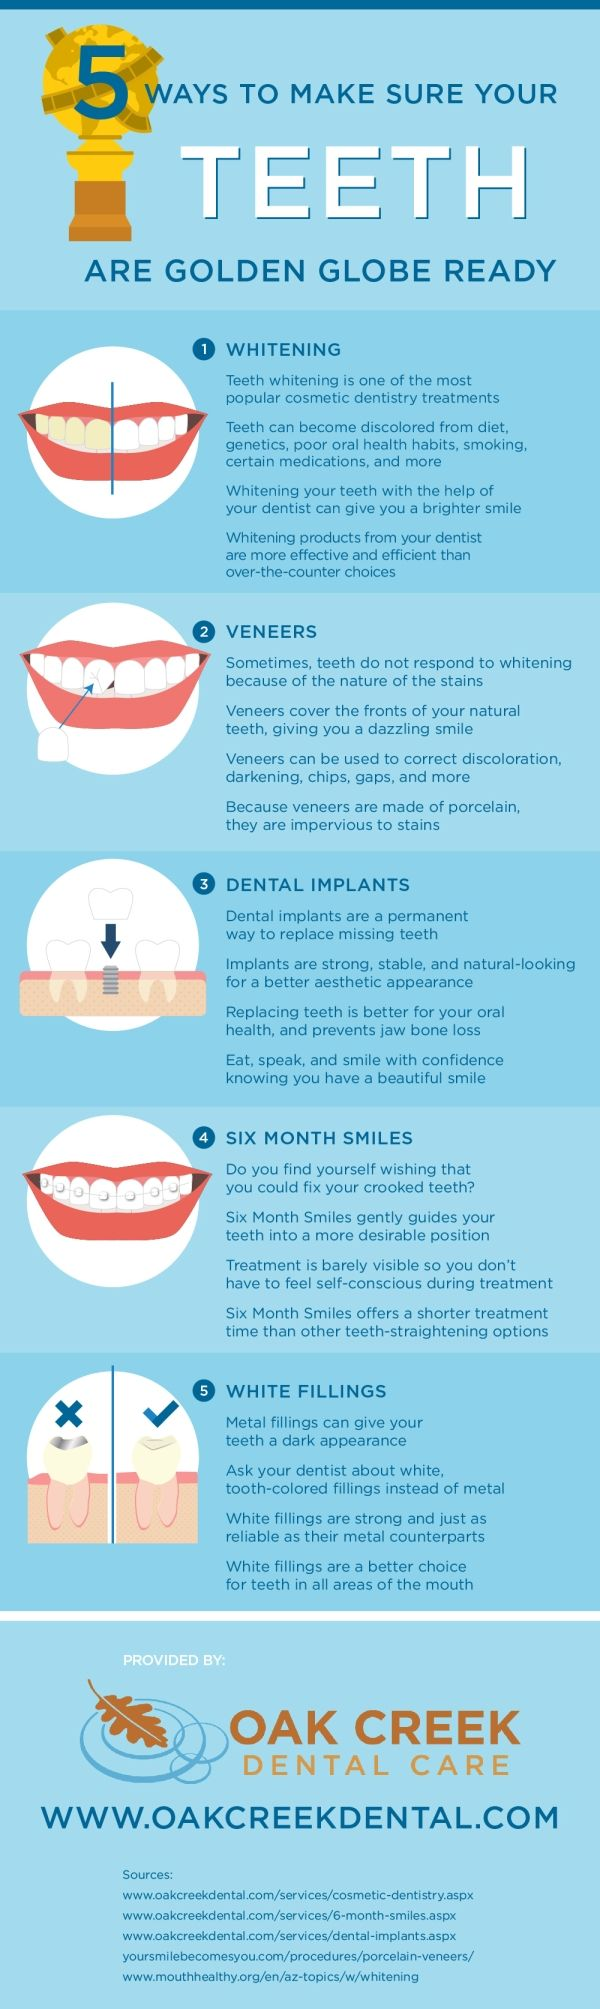 106 best cosmetic dentistry images on pinterest dental procedures veneers dental implants and teeth whitening are all popular cosmetic dentistry procedures that can revitalize your smile look at this infographic and solutioingenieria Gallery